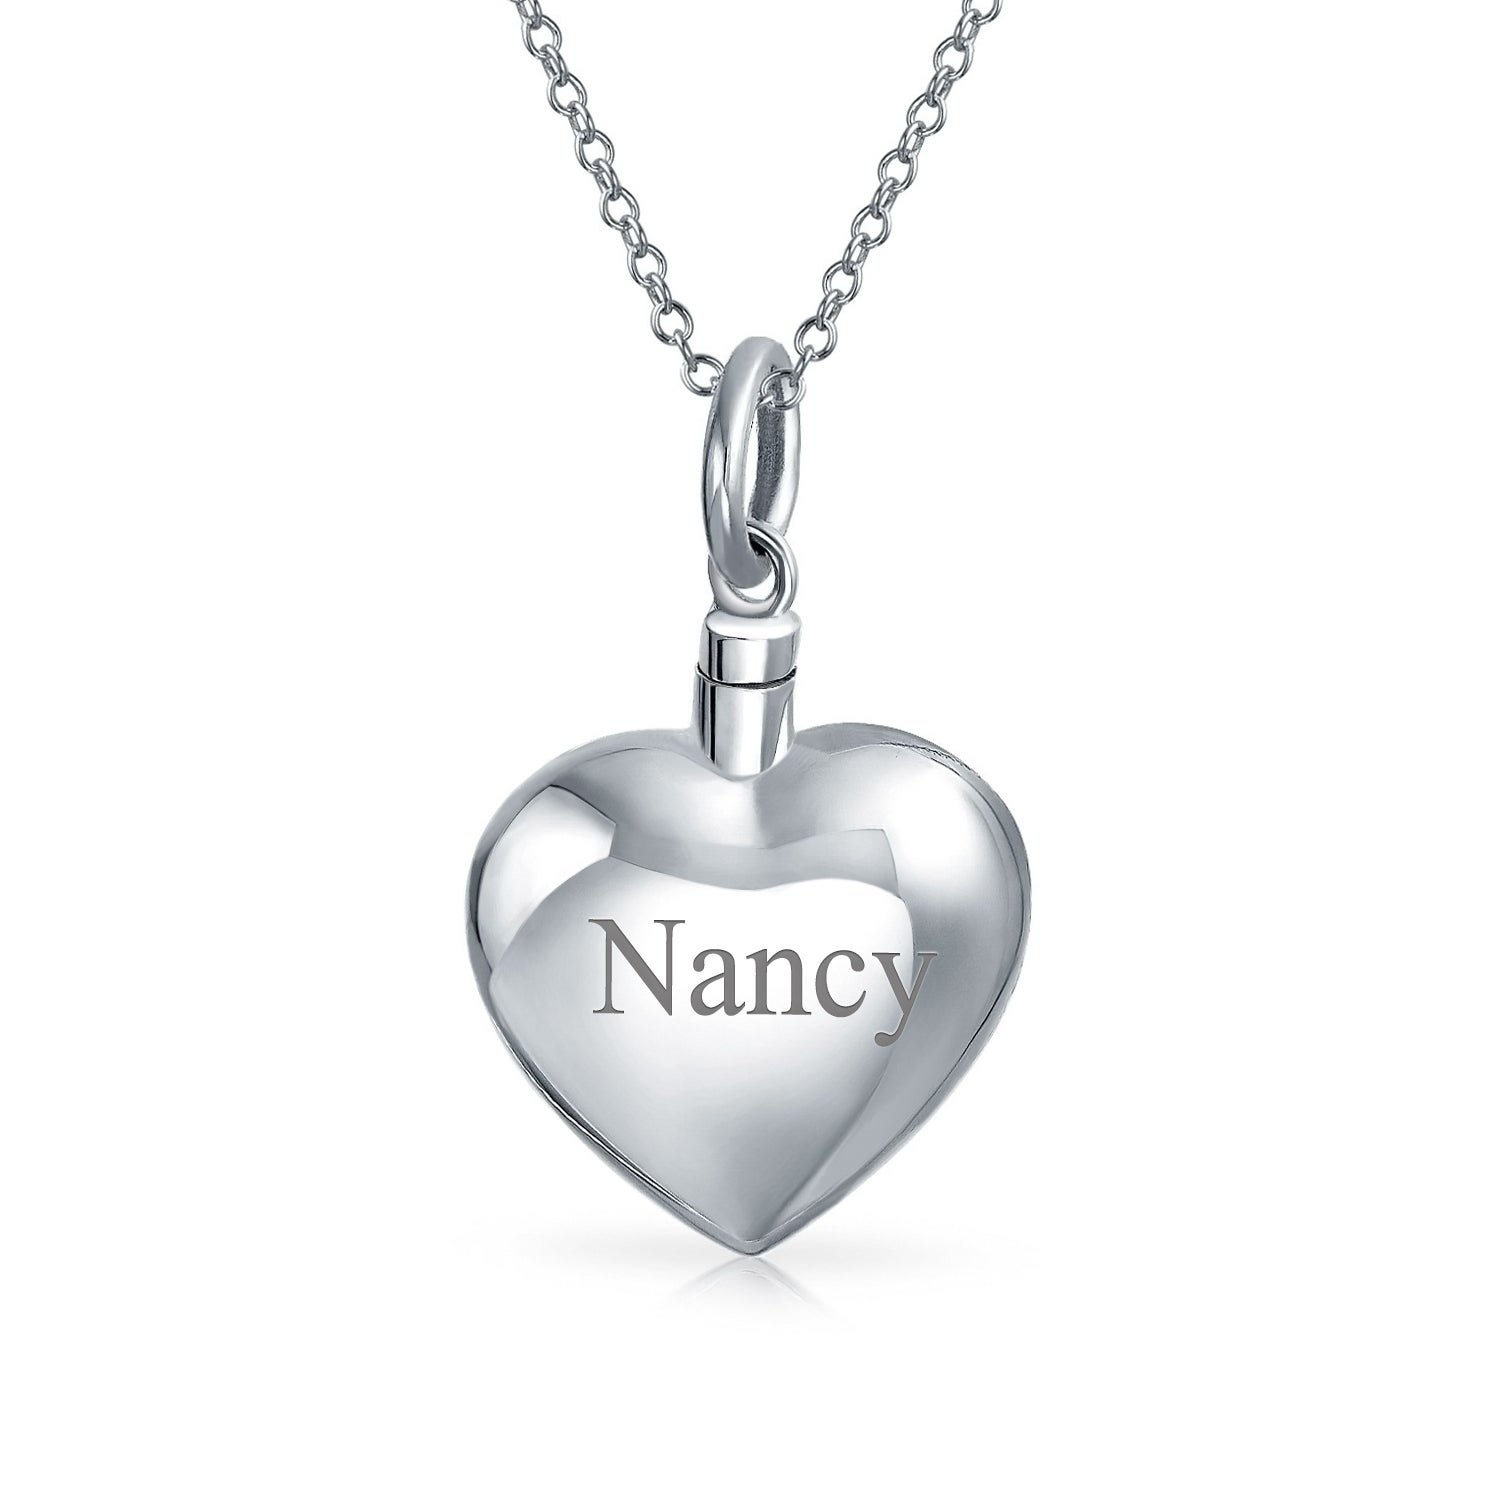 Shop Large Engravable Puff Heart Shape Locket Pendant For Women Memorial Cremation Urn Necklace For Ashes 925 Sterling Silver 16 Overstock 22046340